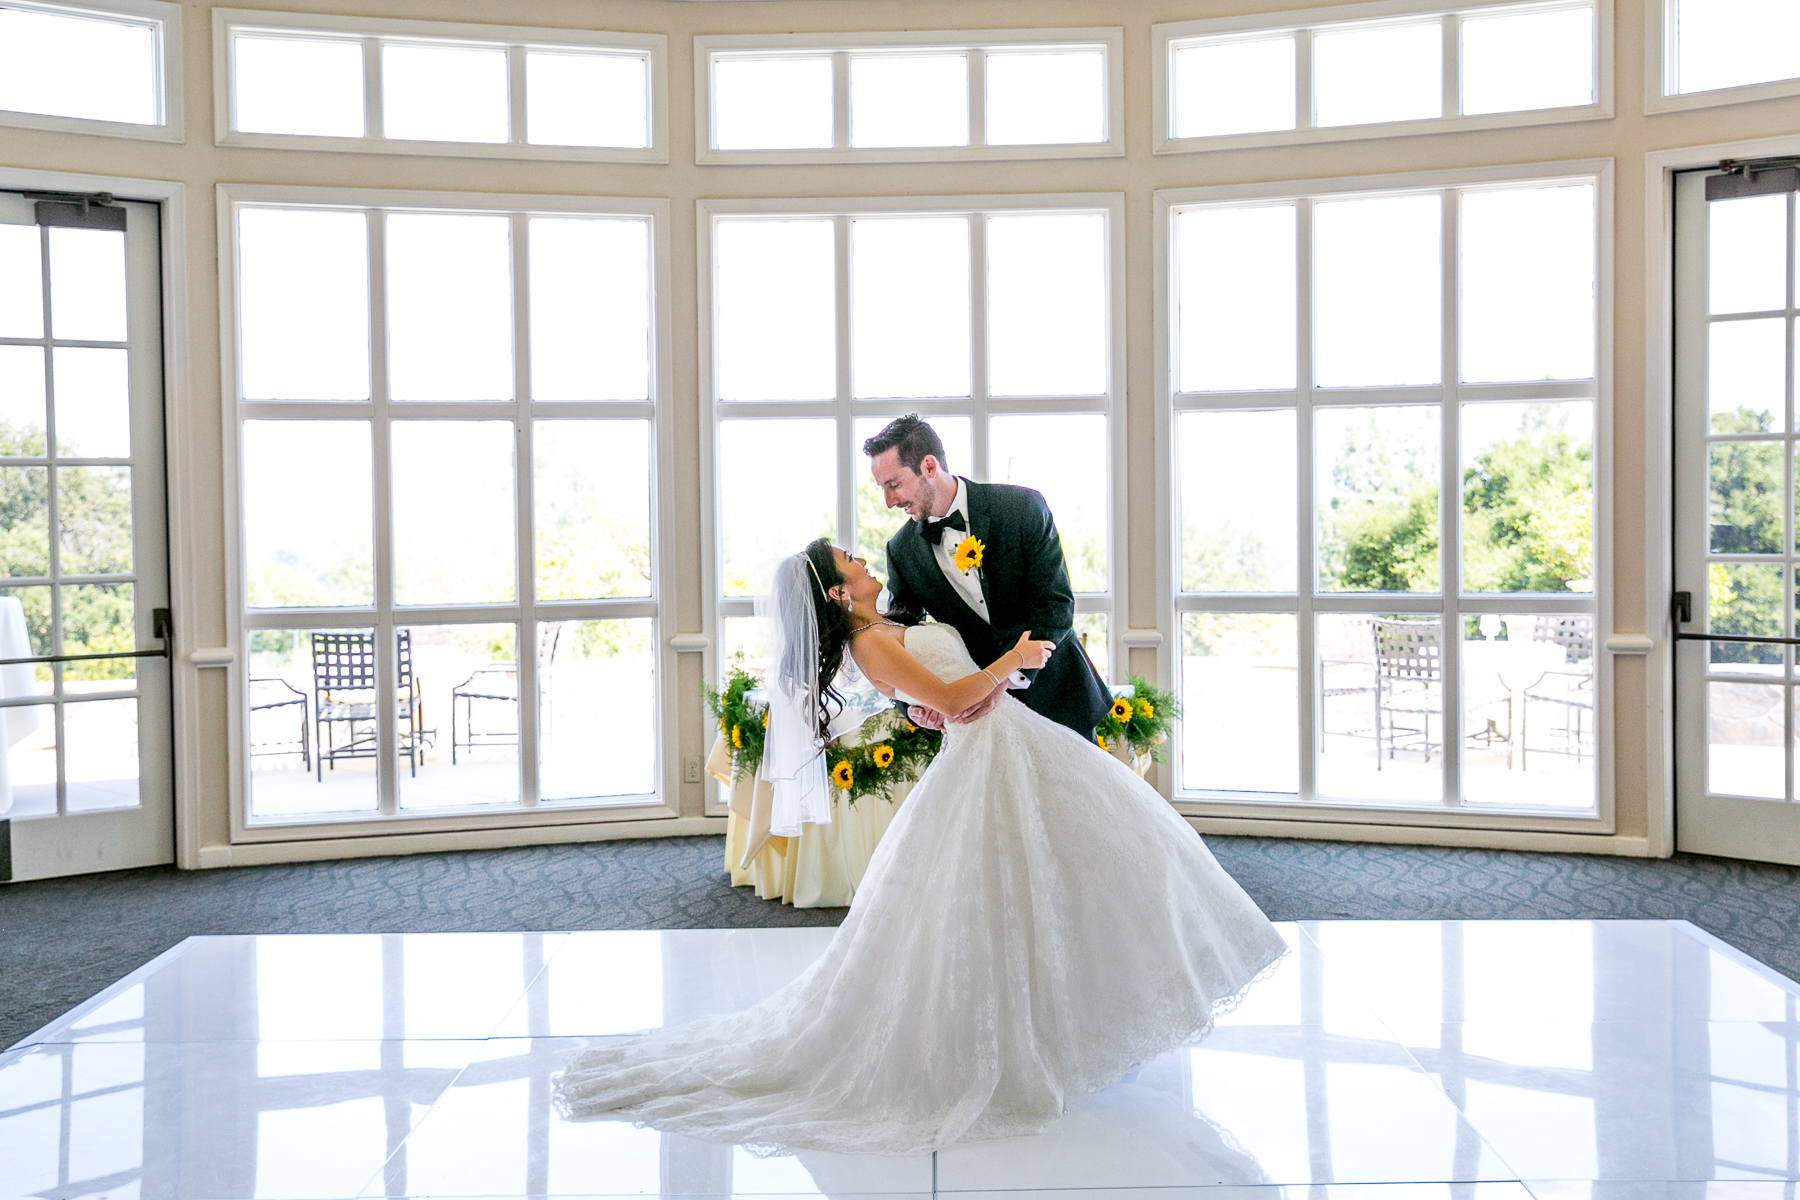 groom dips bride on dance floor at reception of summit house wedding pictures